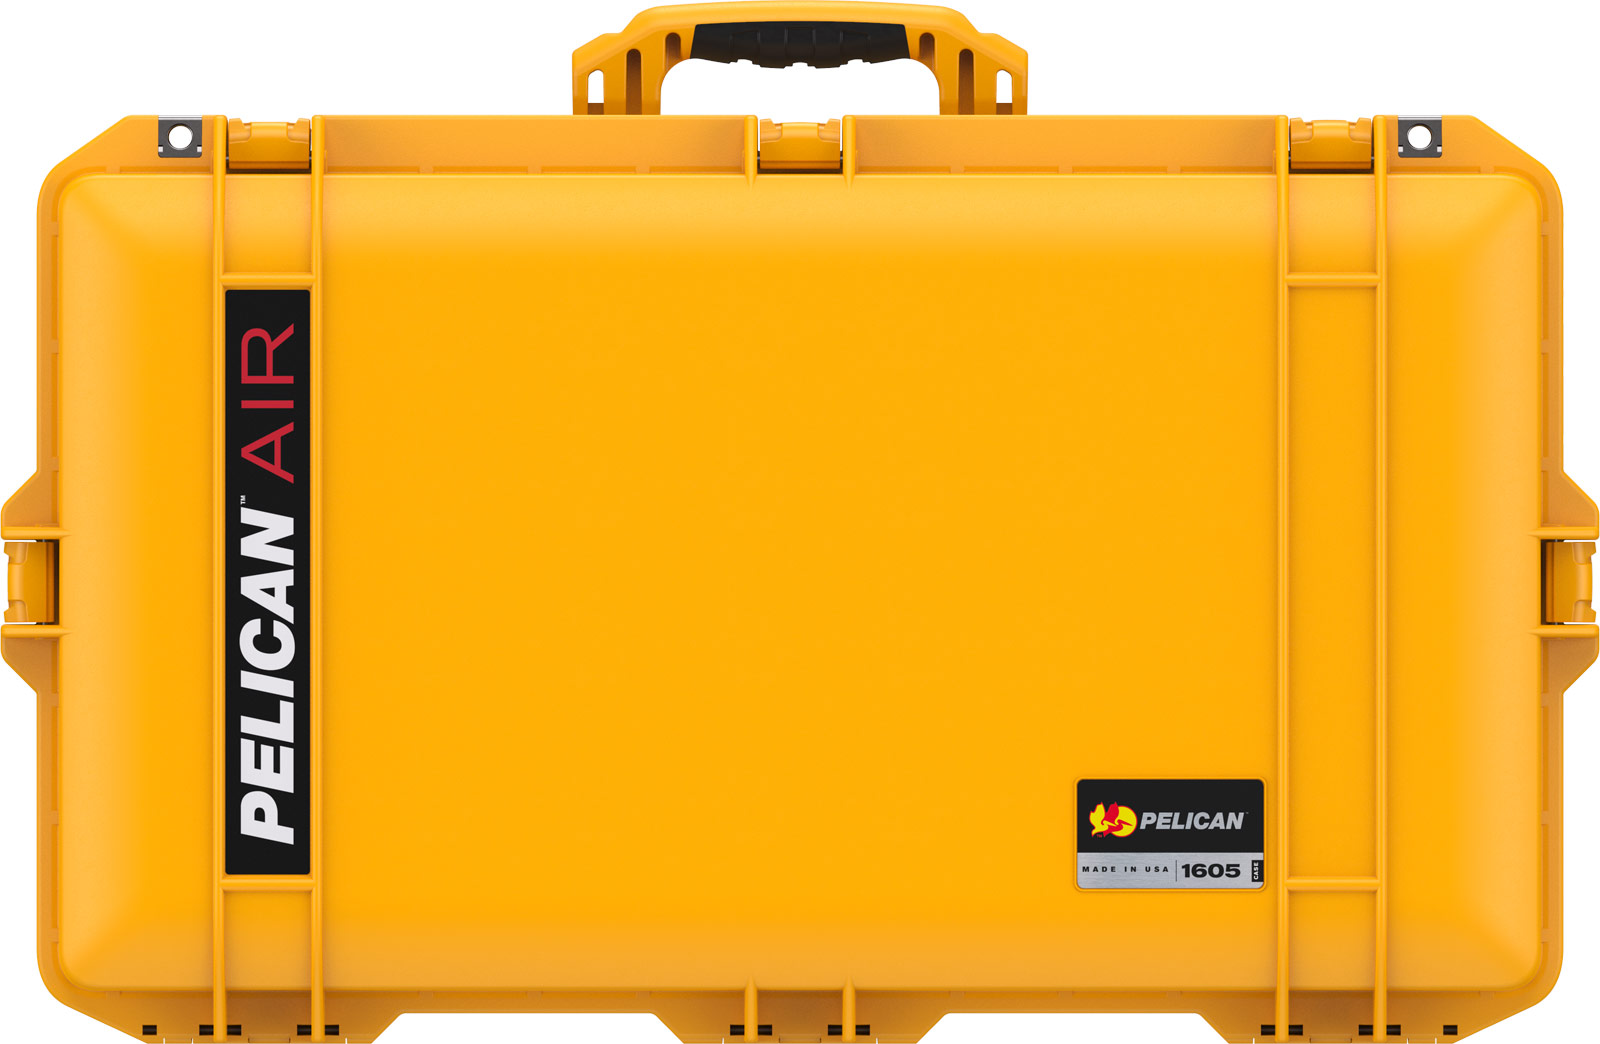 pelican 1605 air yellow travel check in case